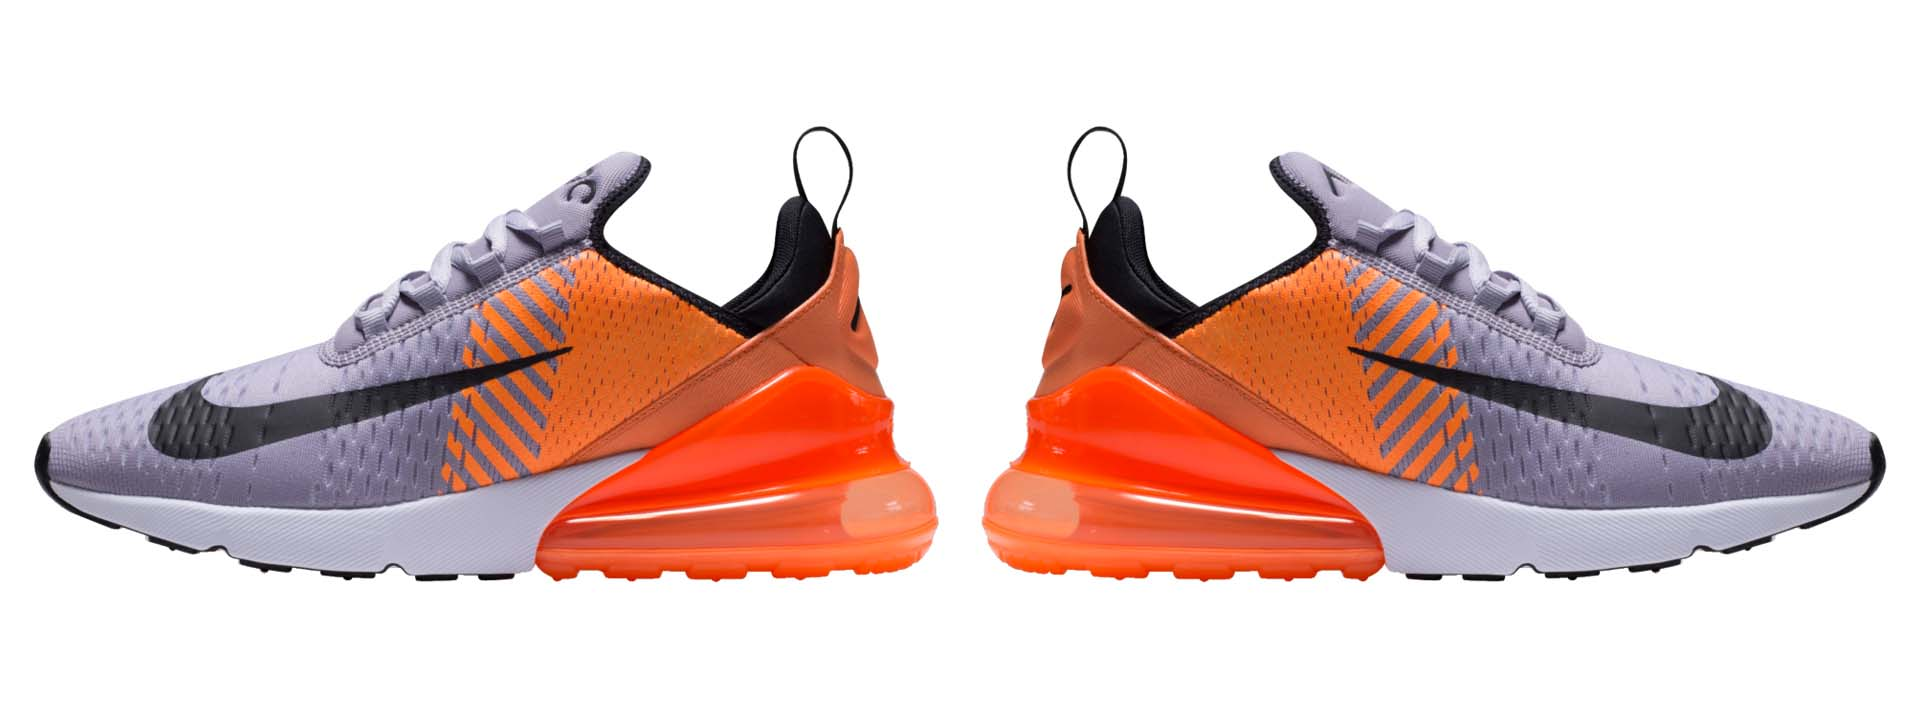 fd3af06a4a12 Nike Launch Air Max 270 Mercurial Heritage Collection - SoccerBible